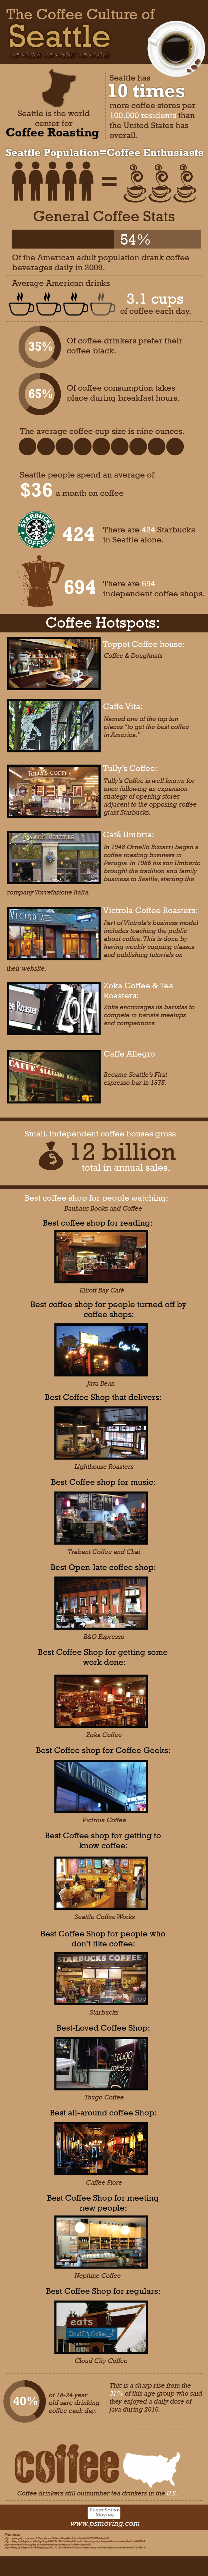 Seattle Coffee Culture